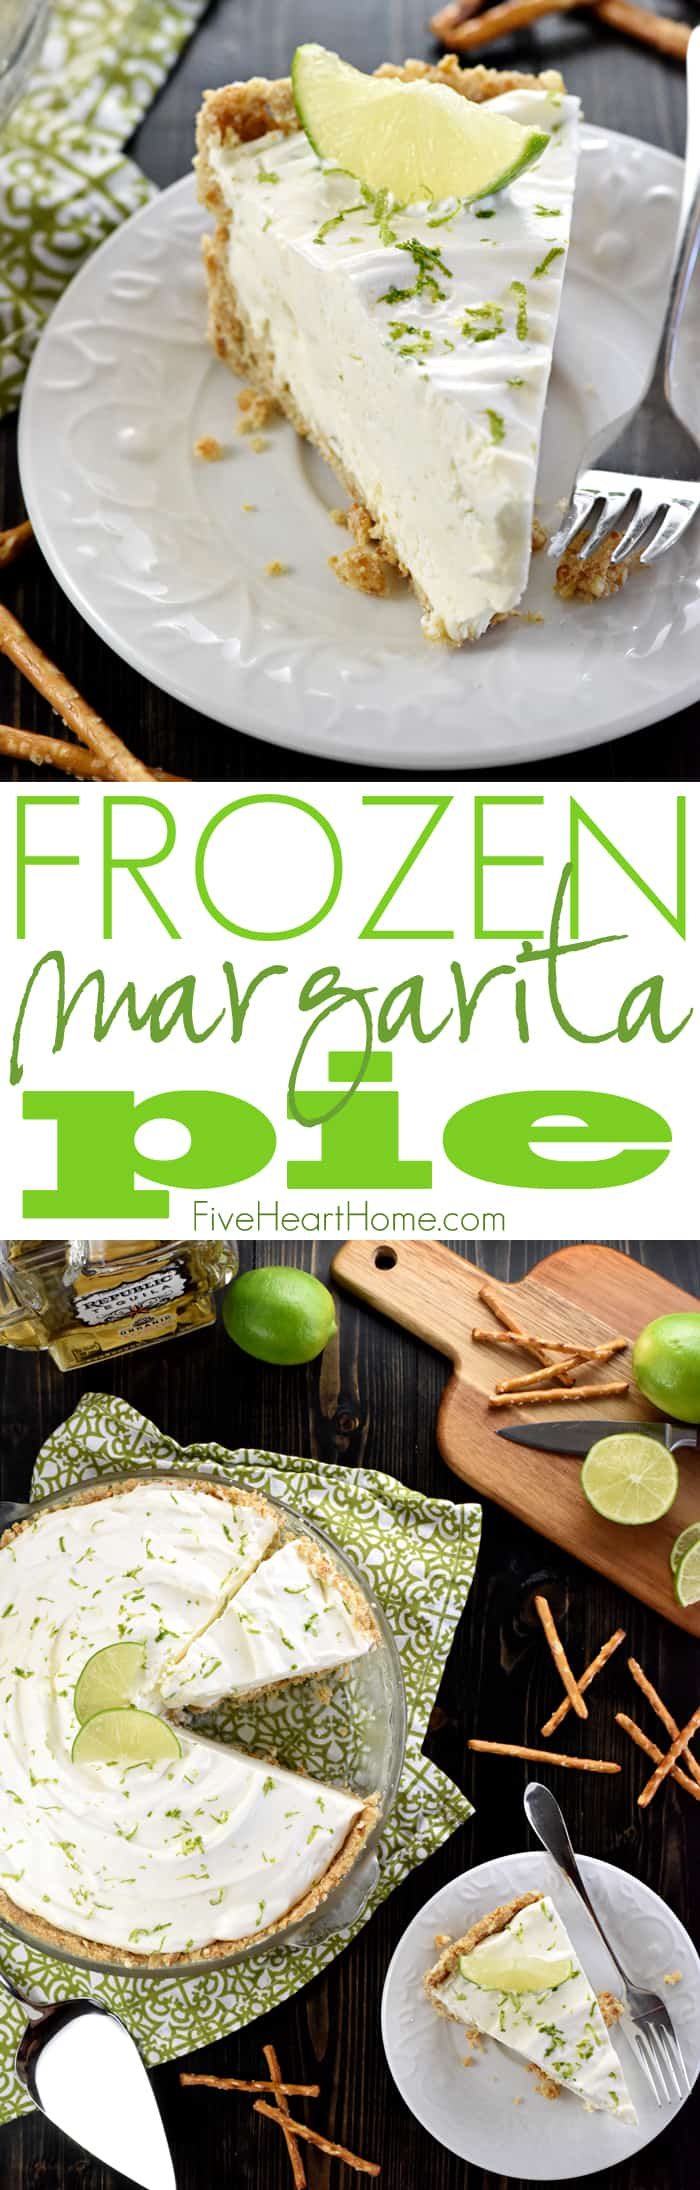 No-Bake Frozen Margarita Pie Collage with Text Overlay